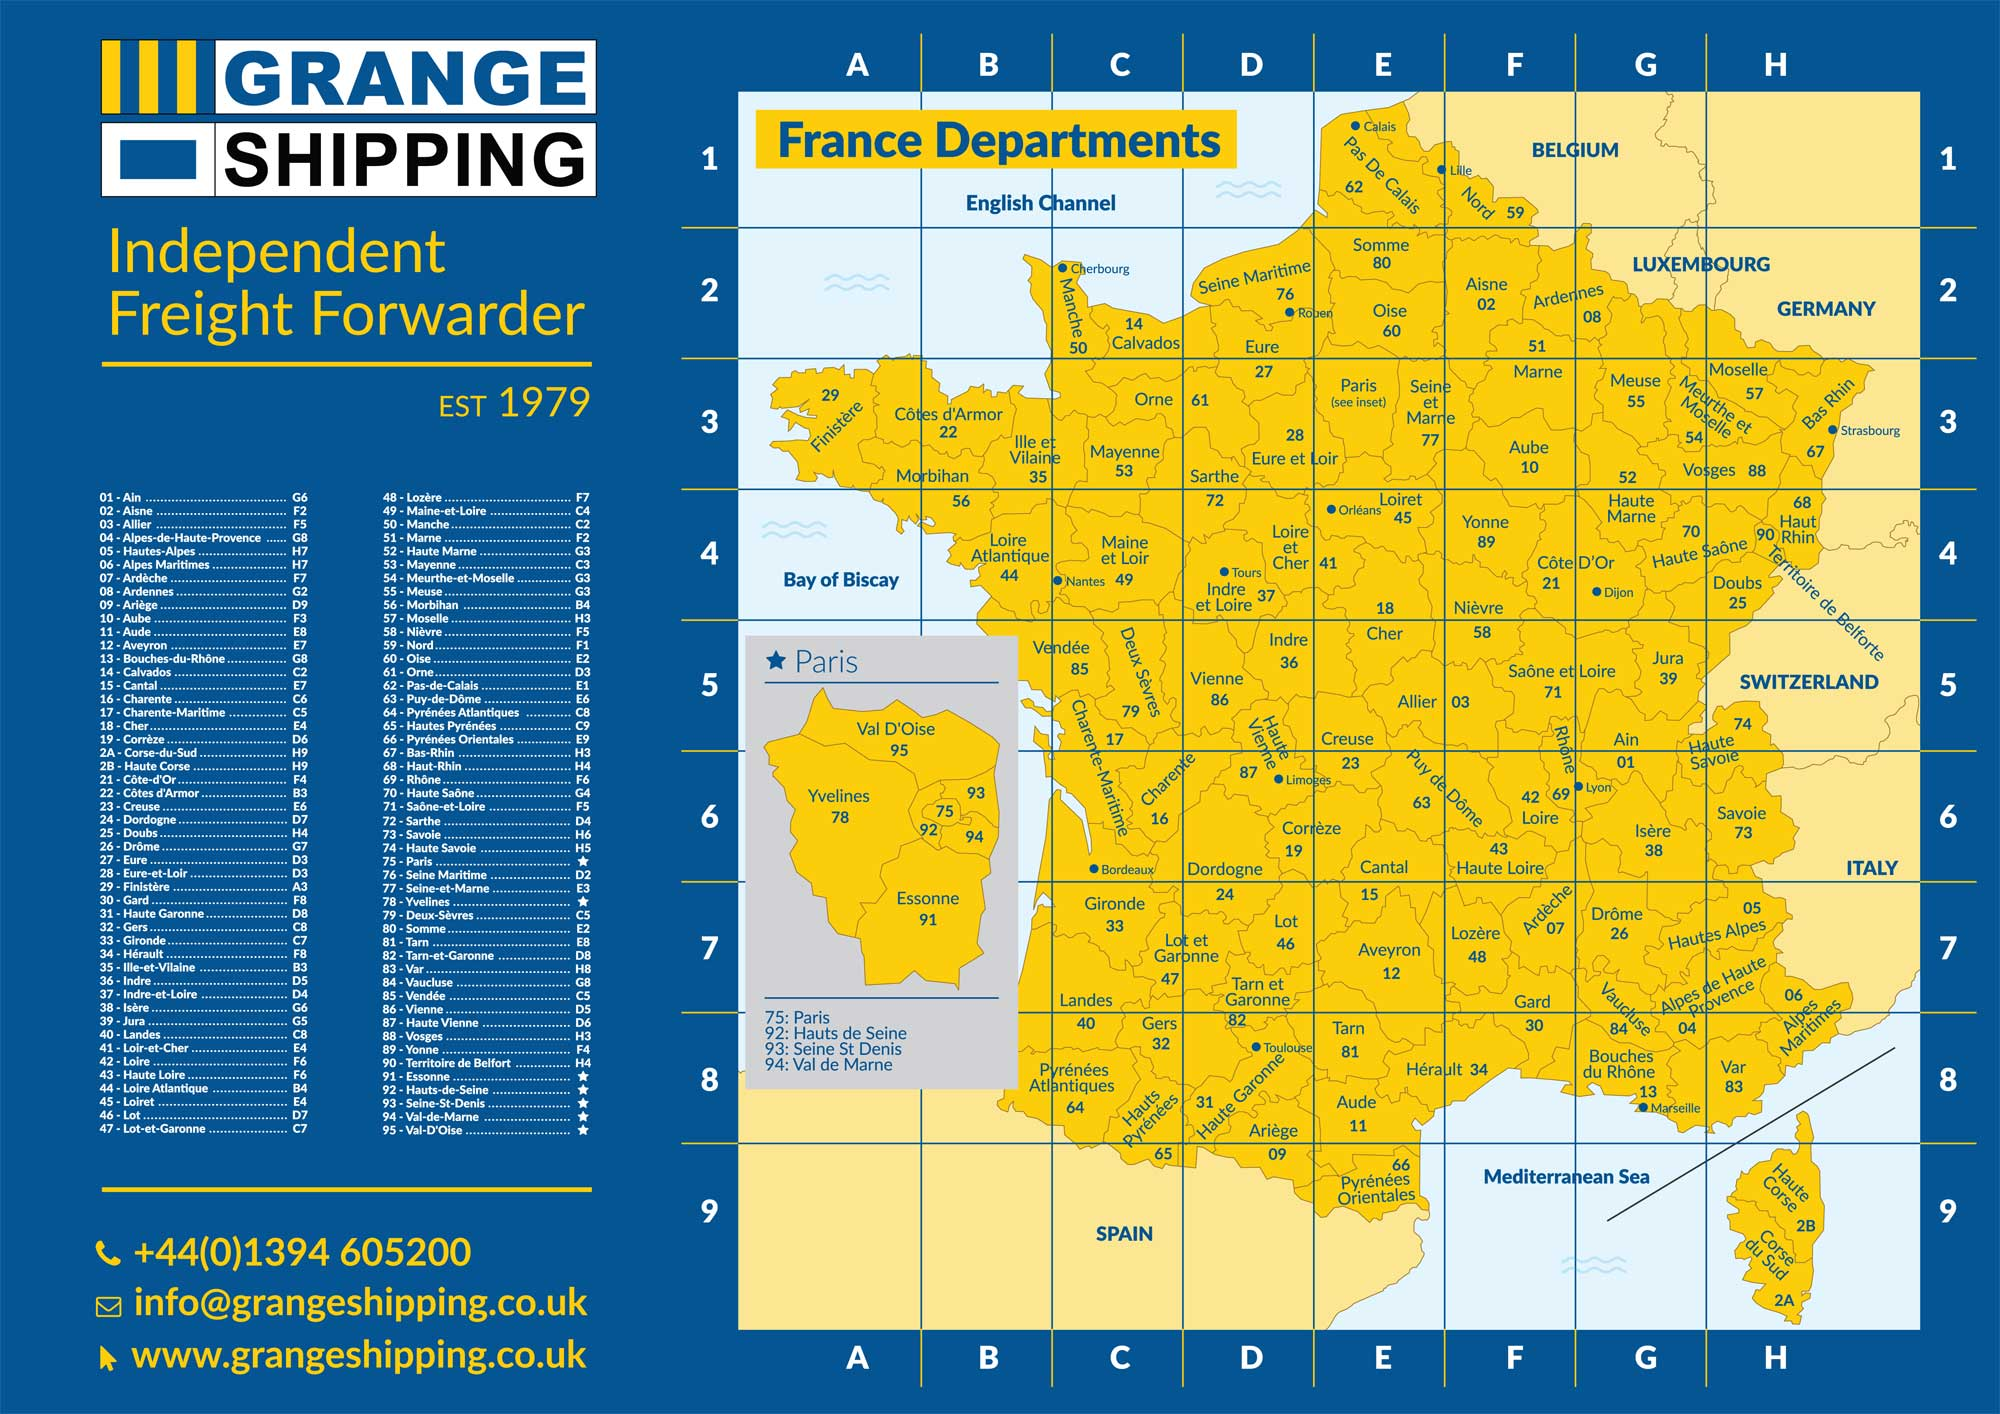 France Departments Map